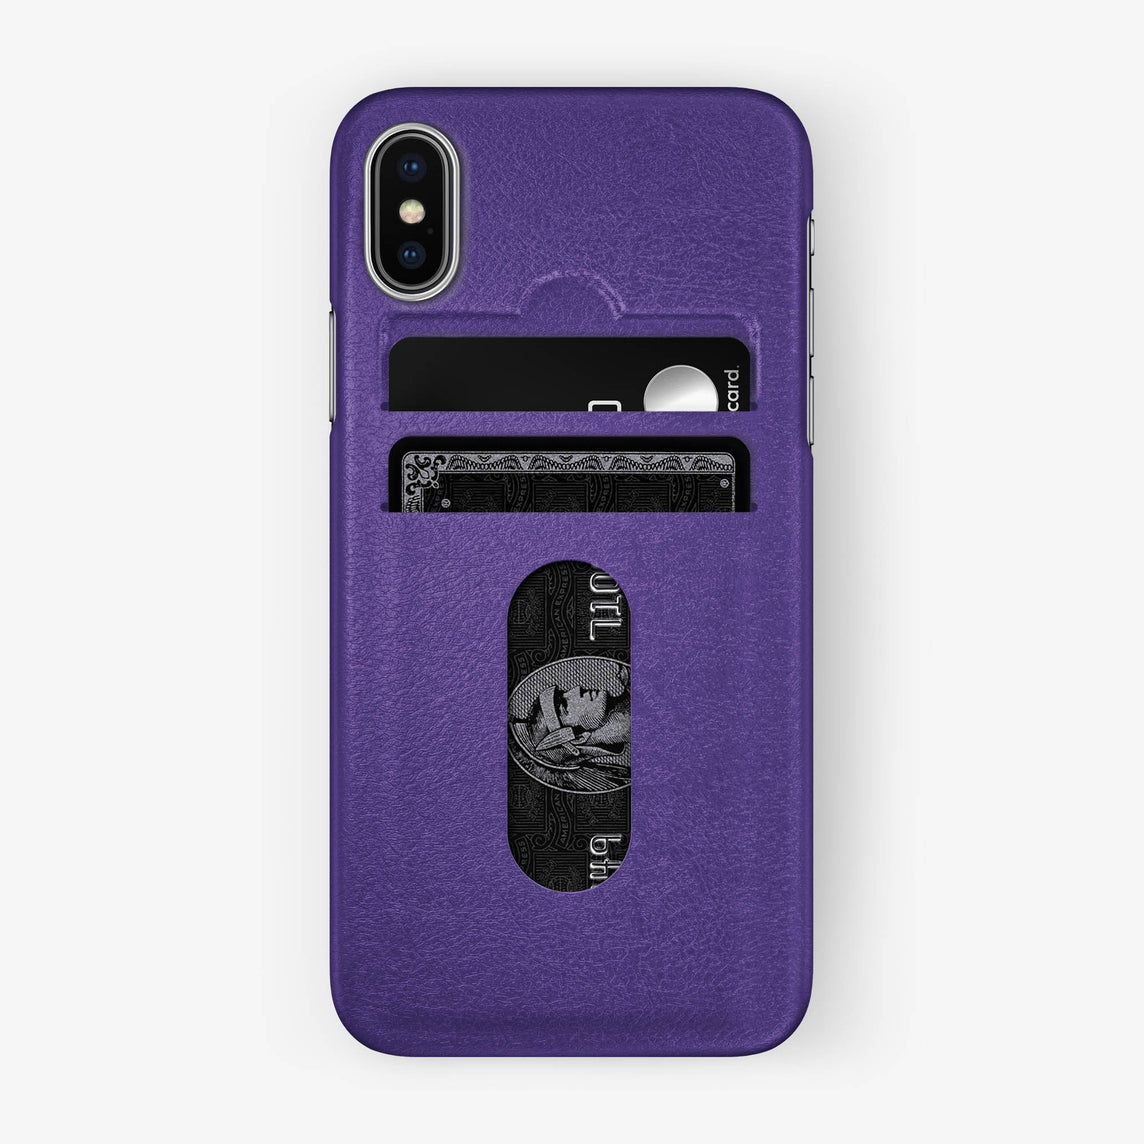 Purple Calfskin iPhone Card Holder Case for iPhone X finishing stainless steel - Hadoro Luxury Cases